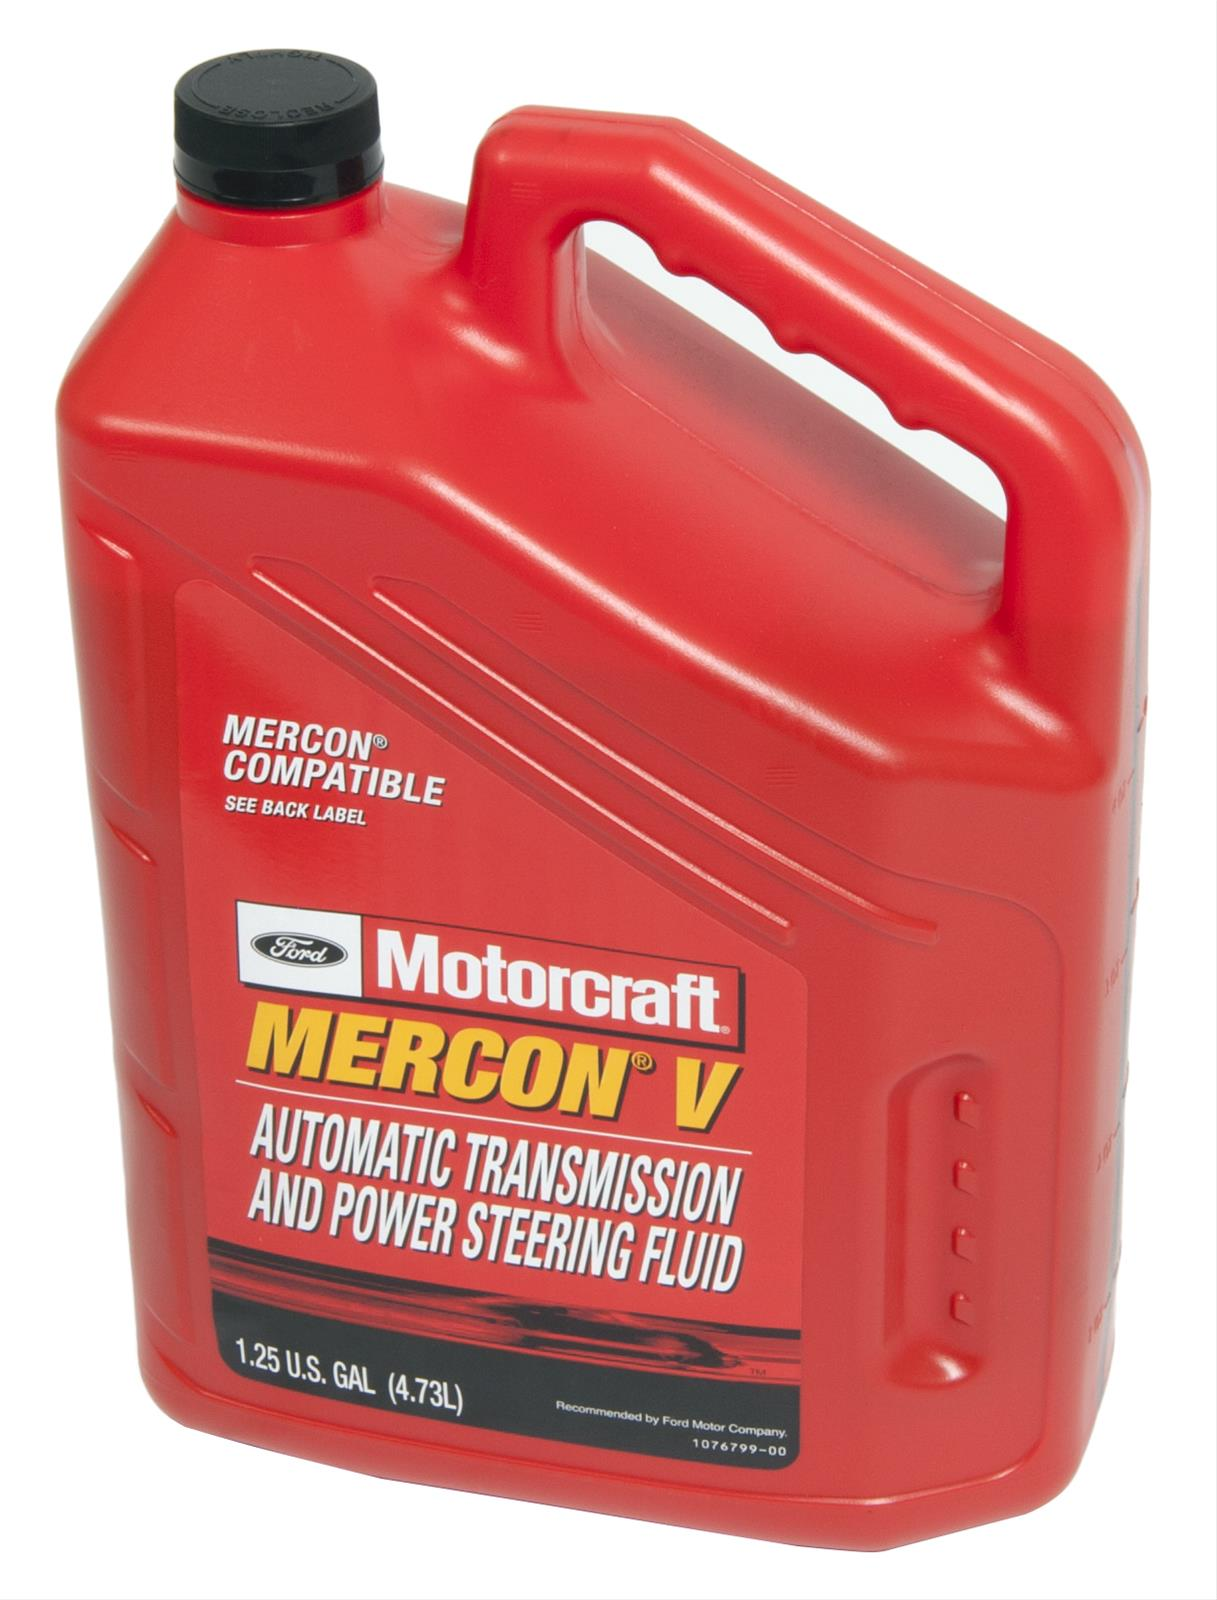 Motorcraft XT55Q3M - Free Shipping on Orders Over $99 at Summit Racing